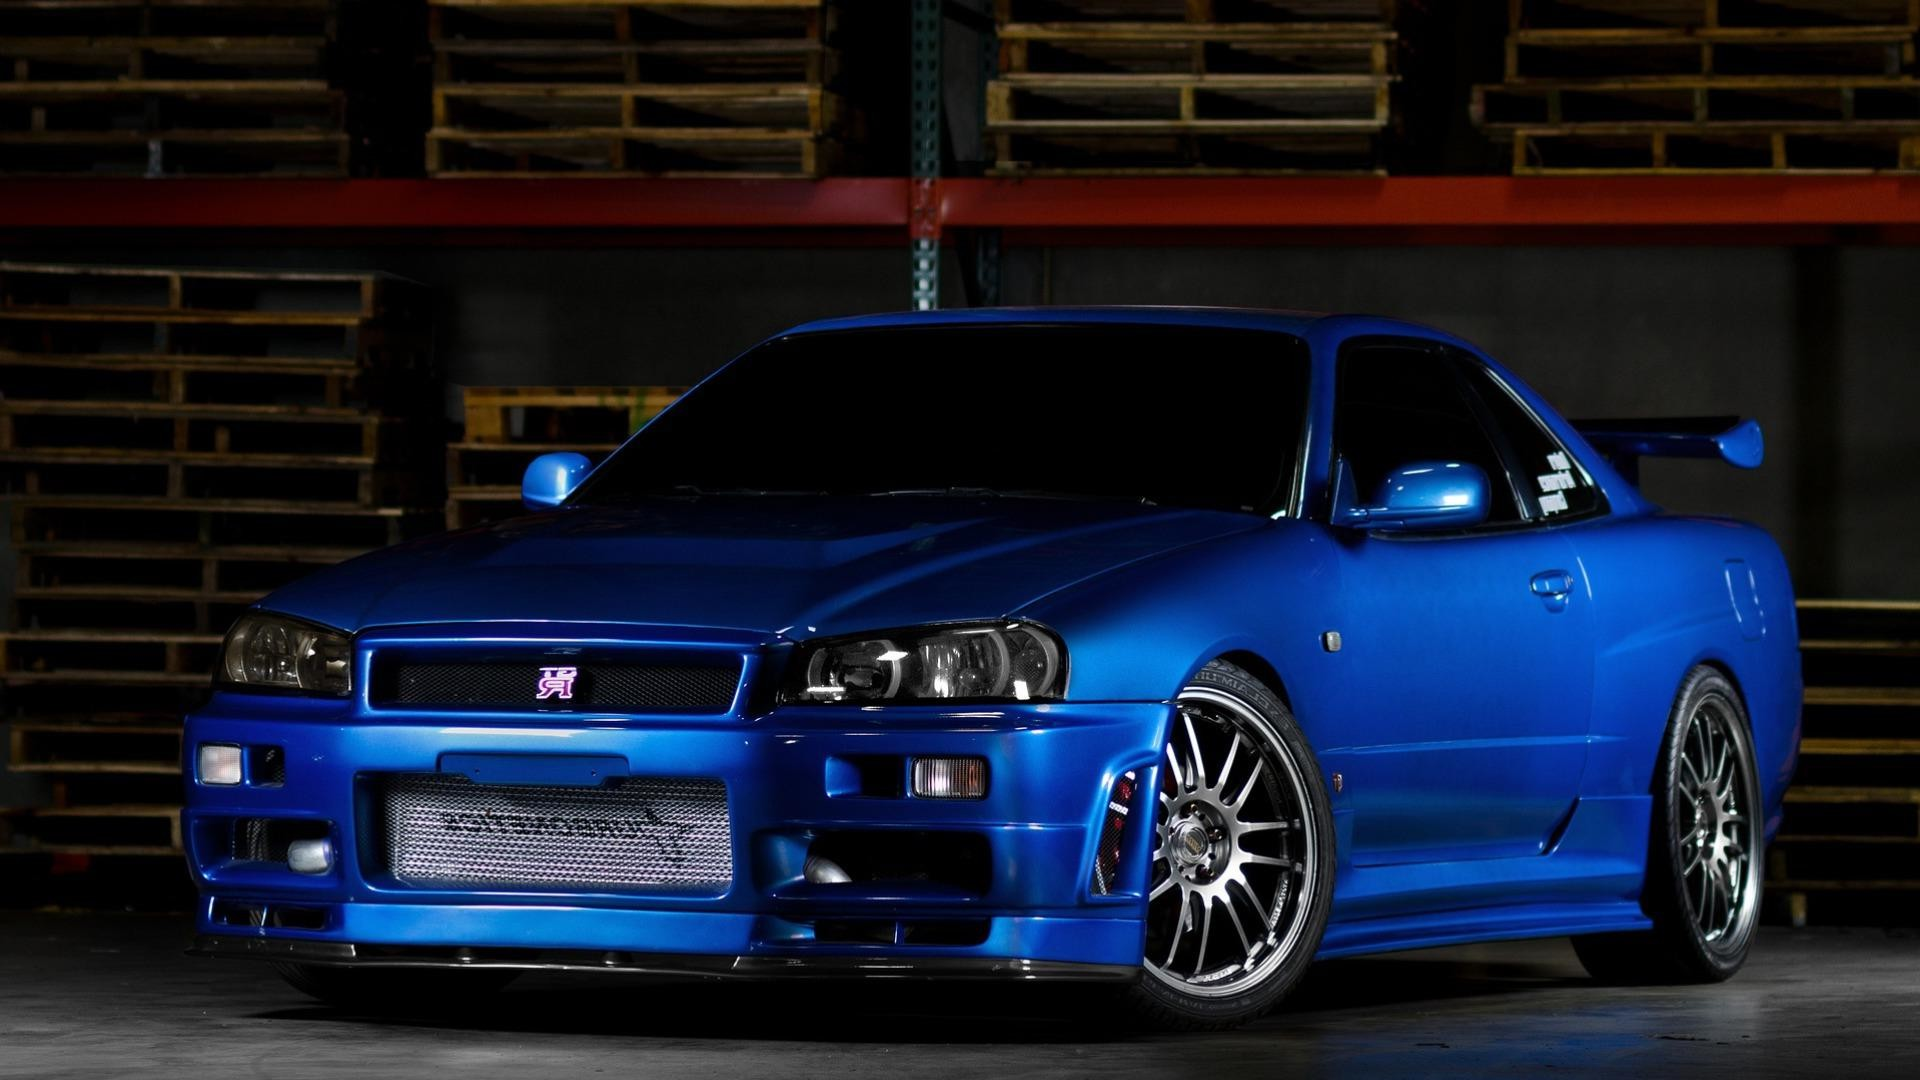 1920x1080 Nissan Skyline Gtr R34 Desktop Hd Wallpapers